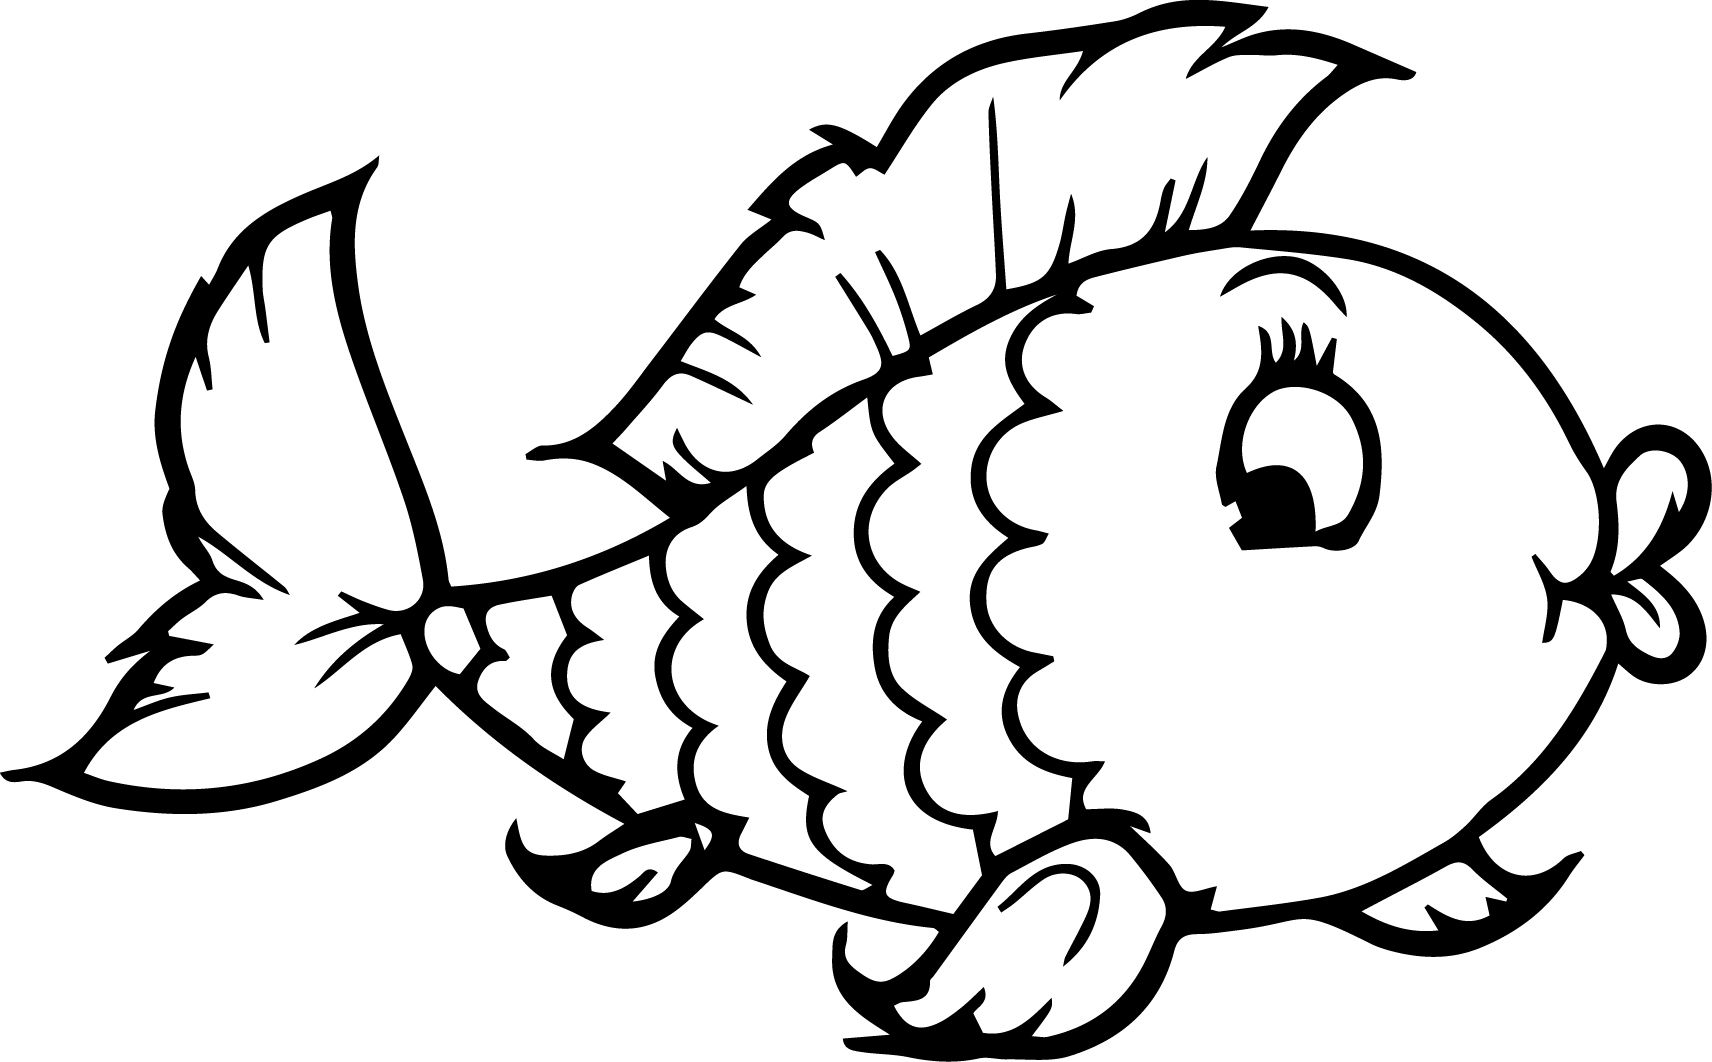 Fish Coloring Page Image By Pradeep Gamage On